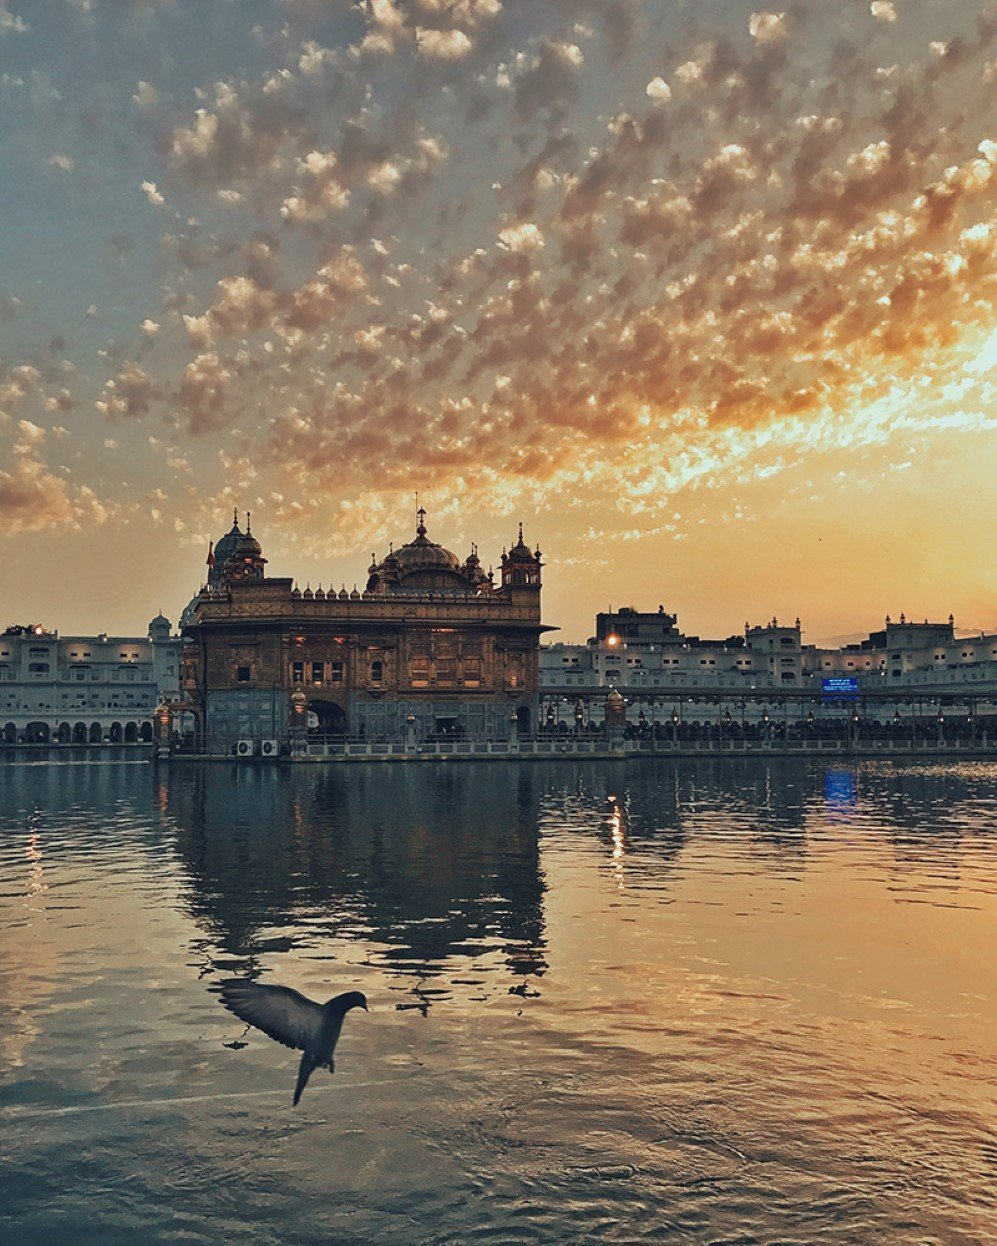 The sunset and the Golden Temple in Amritsar add radiance and beauty to each other. The ripple in water seems to be formed by doves' flapping of wings. I think photography is derived from life, and only people who love life can take a picture of temperature.